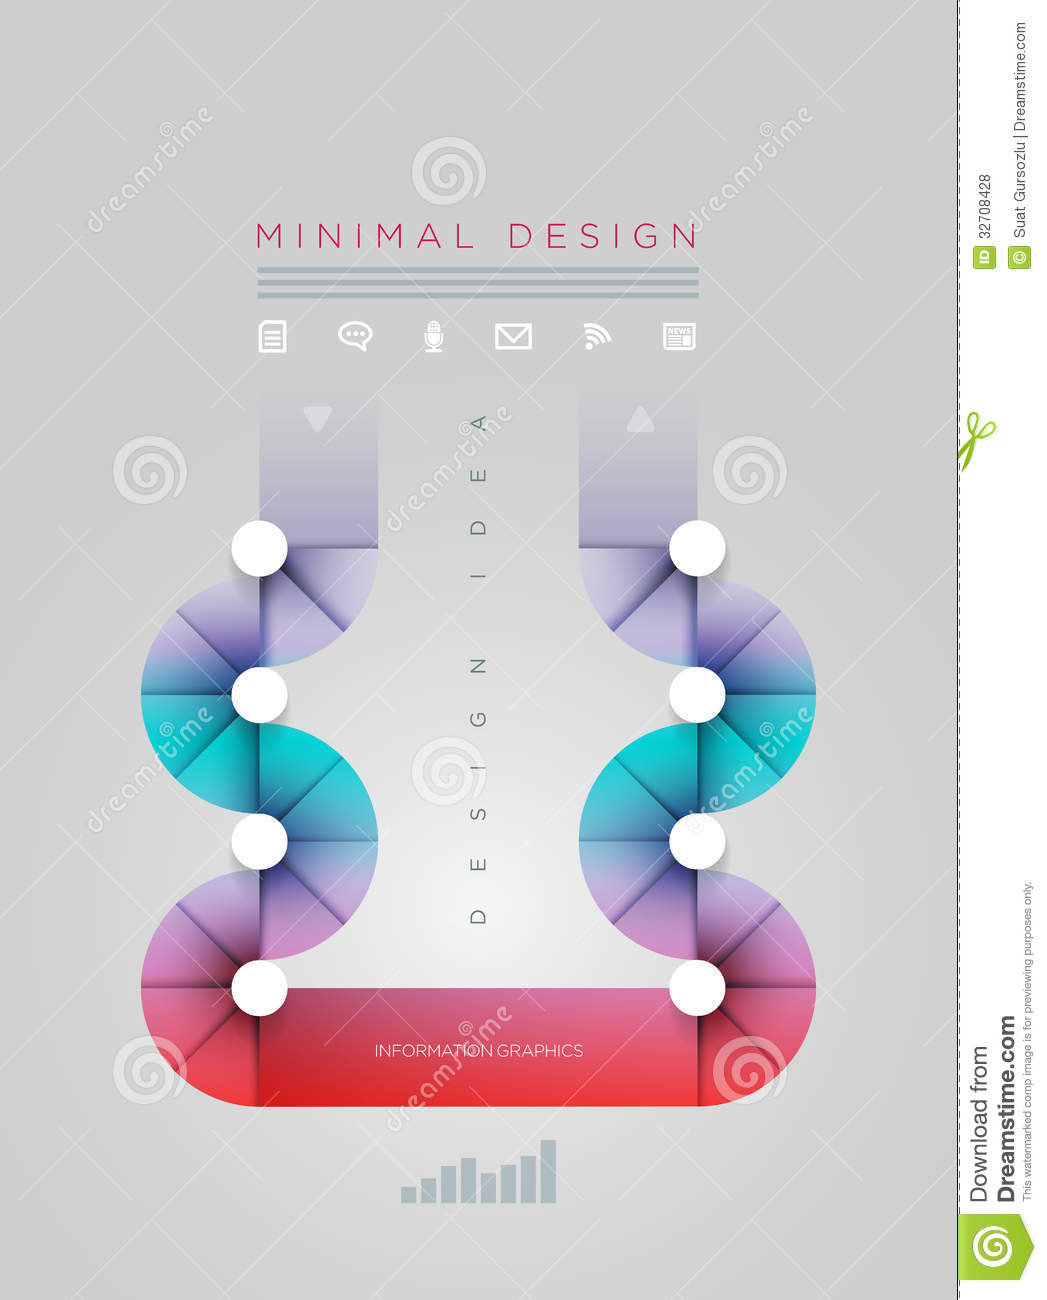 Circle Shape Infographic Design Template Stock Vector